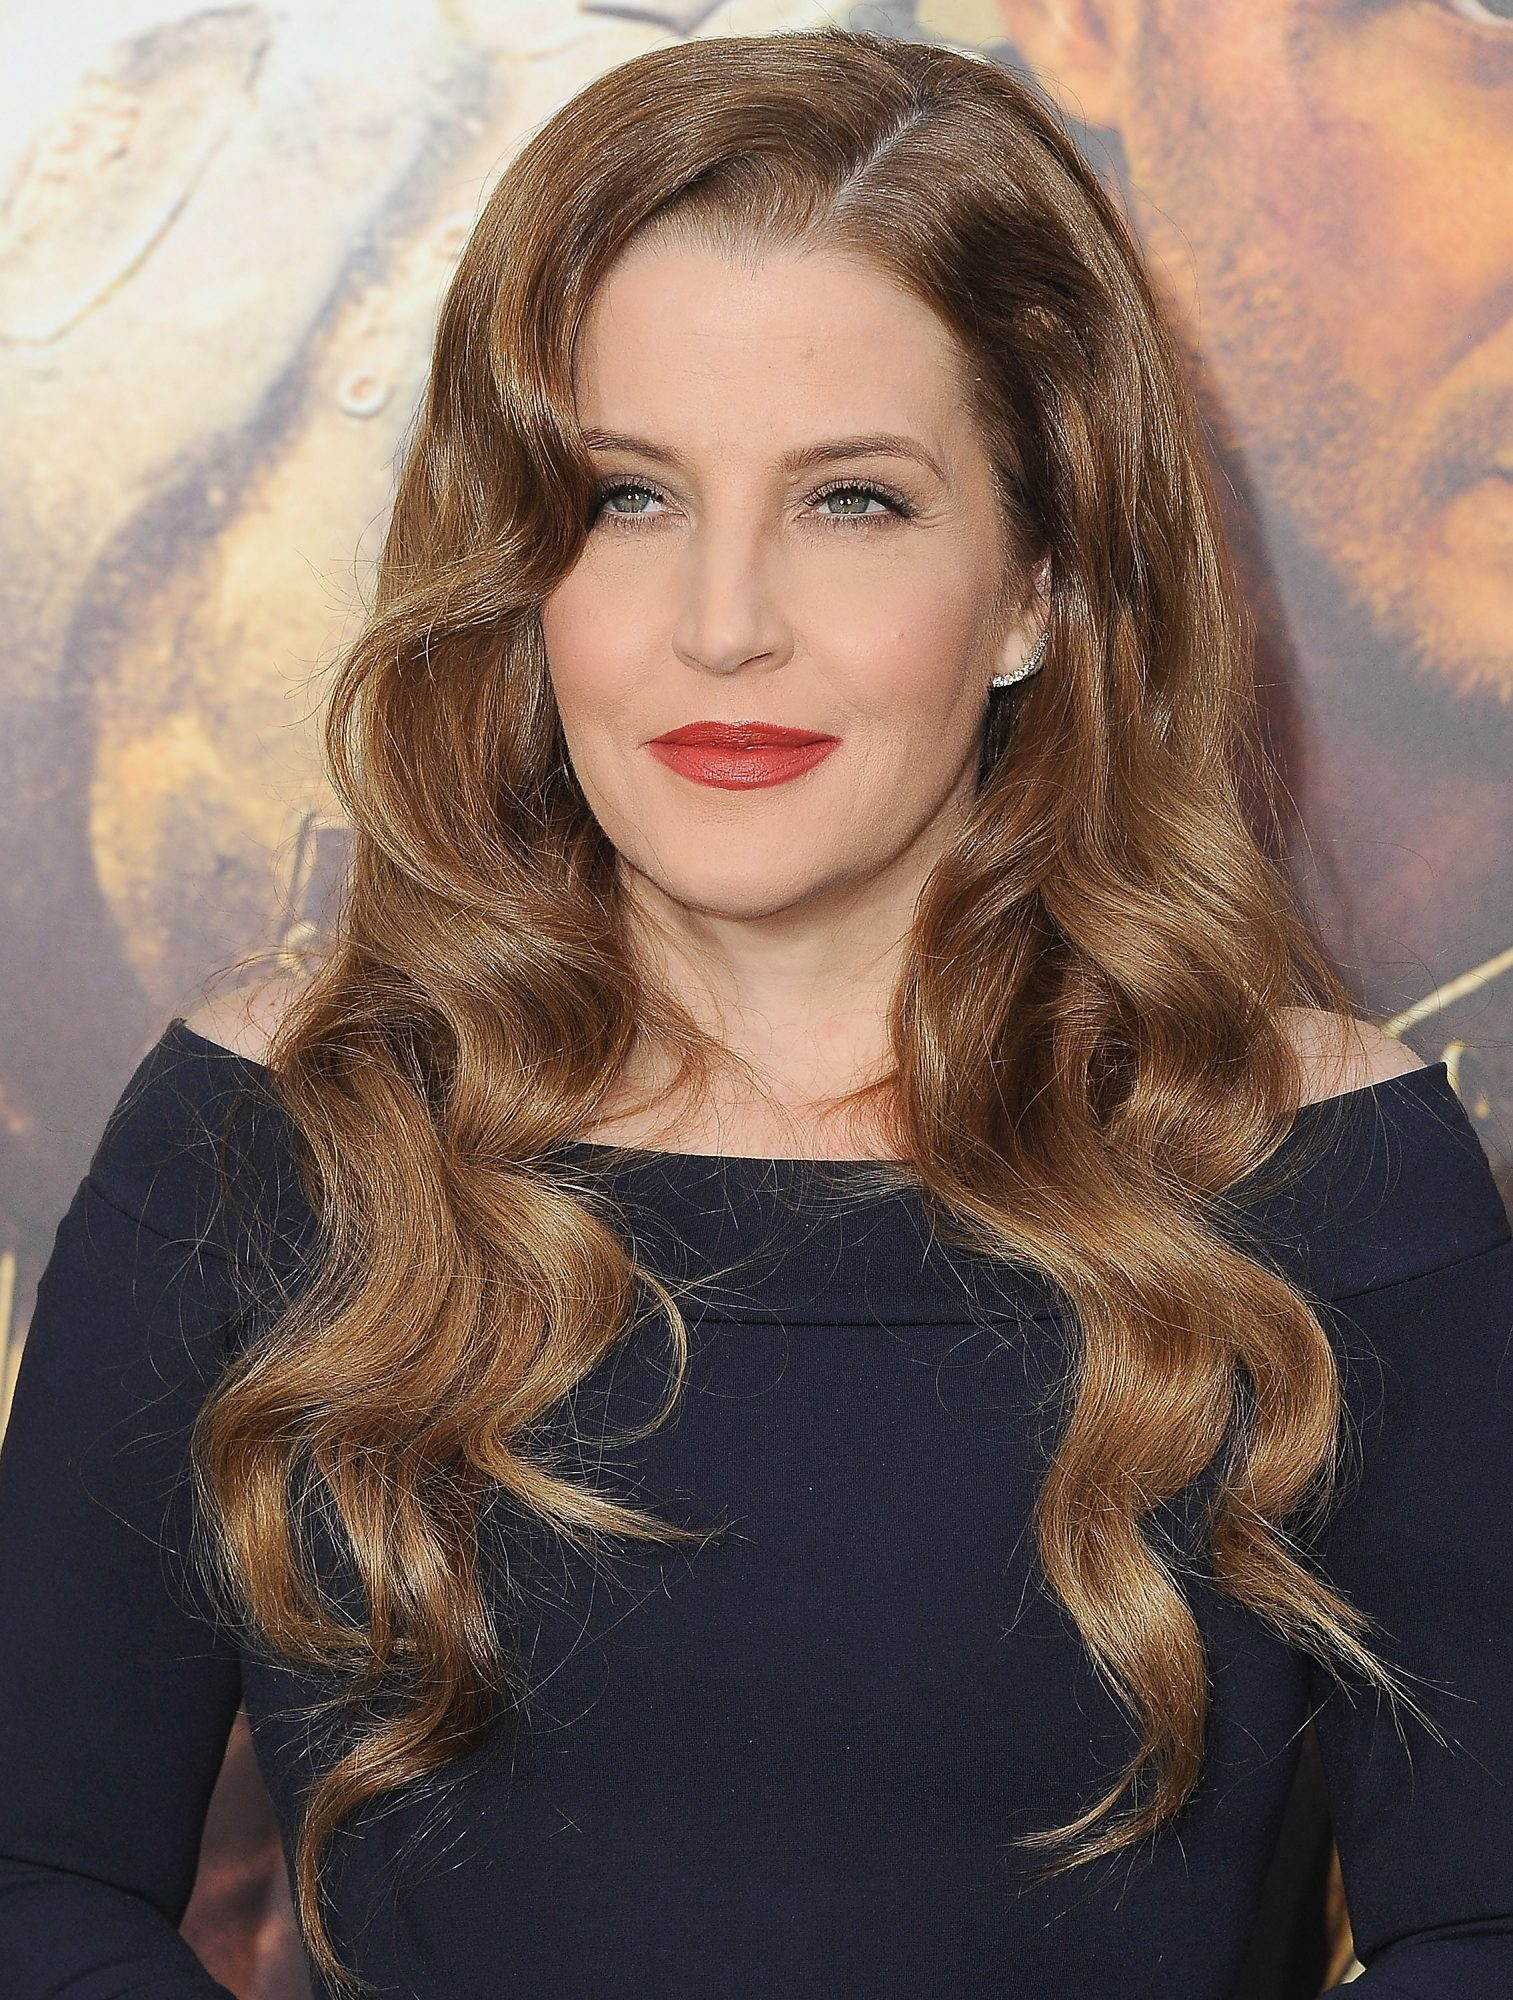 Lisa Marie Presley's Son Looks So Much Like Elvis in This Family Photo